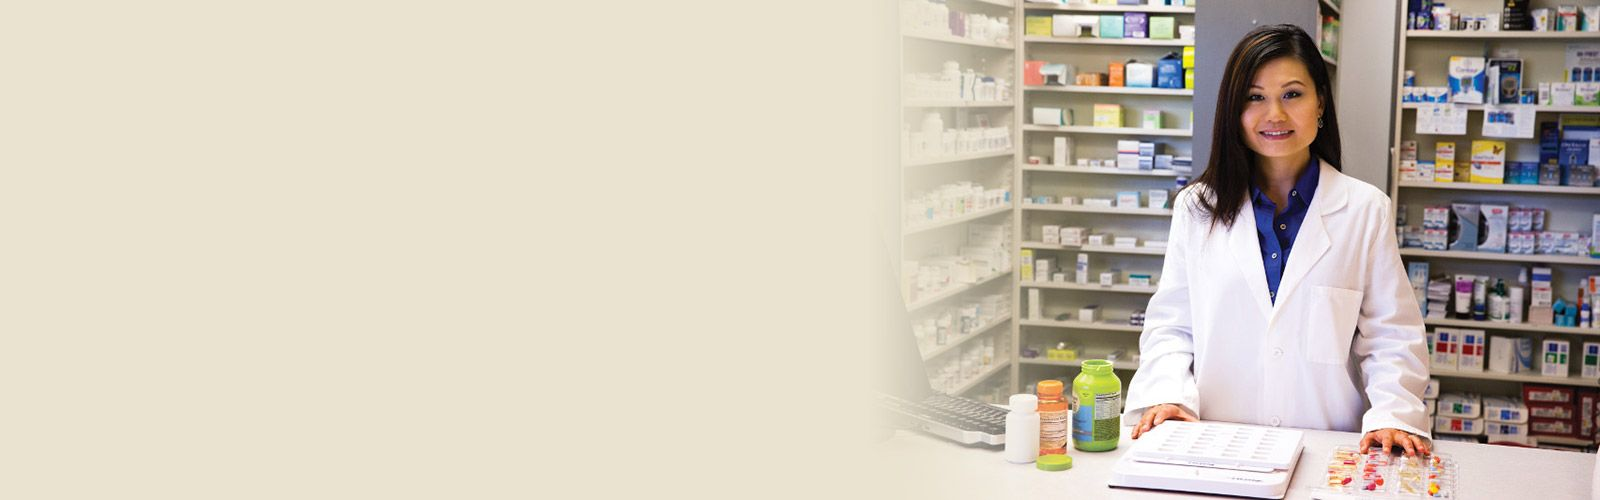 A pharmacist sorting and organizing several prescriptions